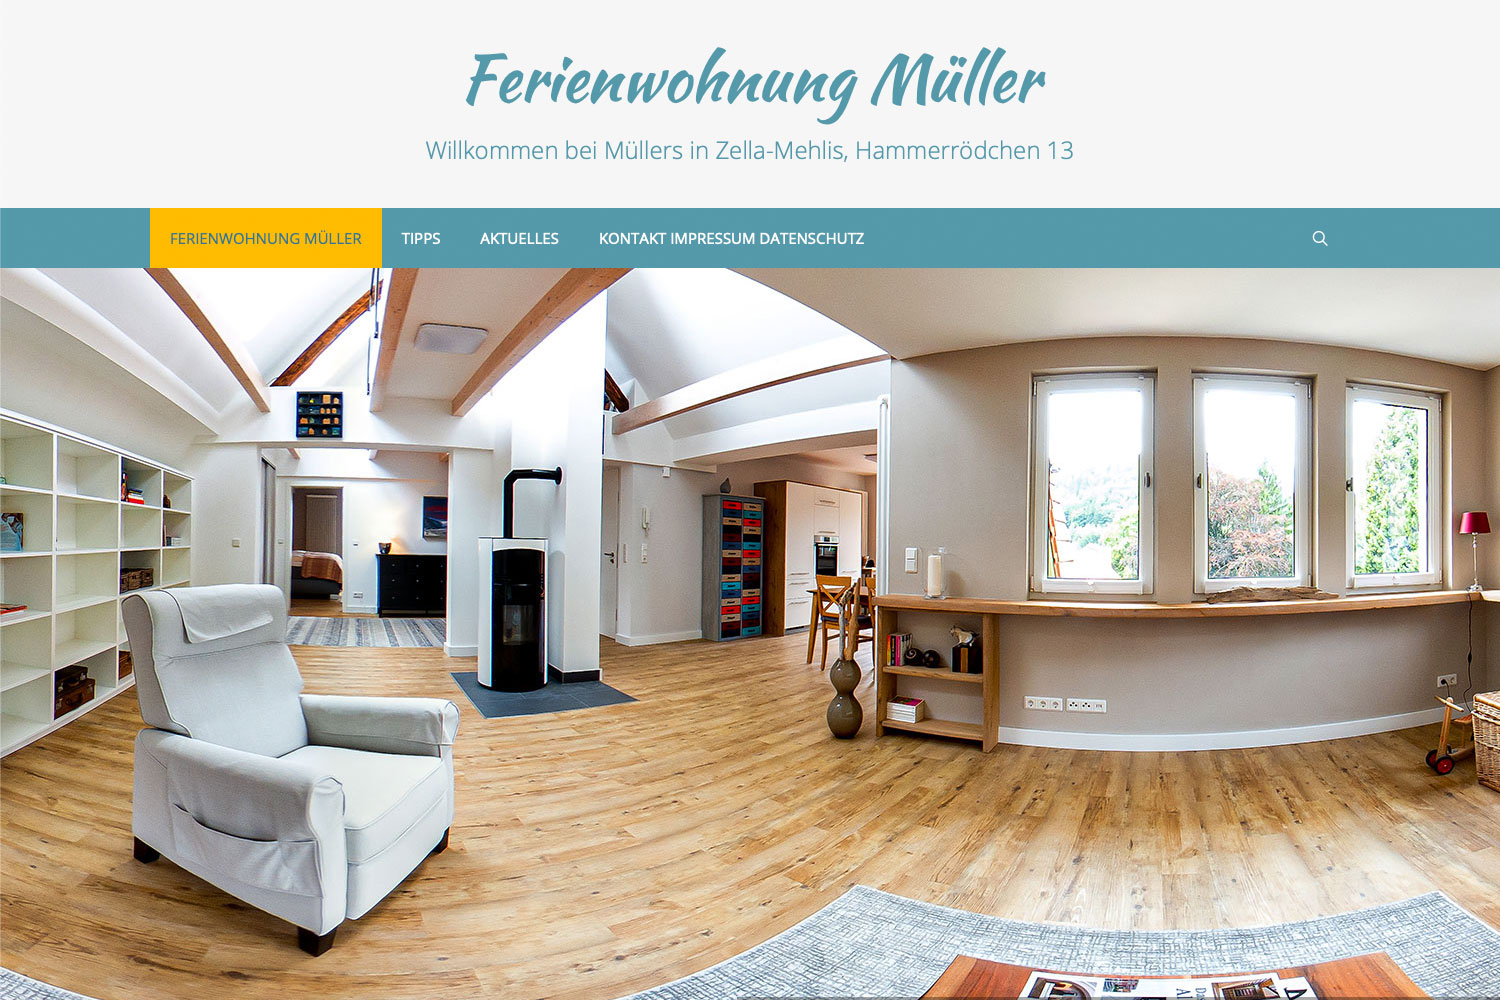 Website fewo.in-zella.mehlis.de (Webdesign: Designakut mit WordPress, Fotos: Jens Gutberlet)